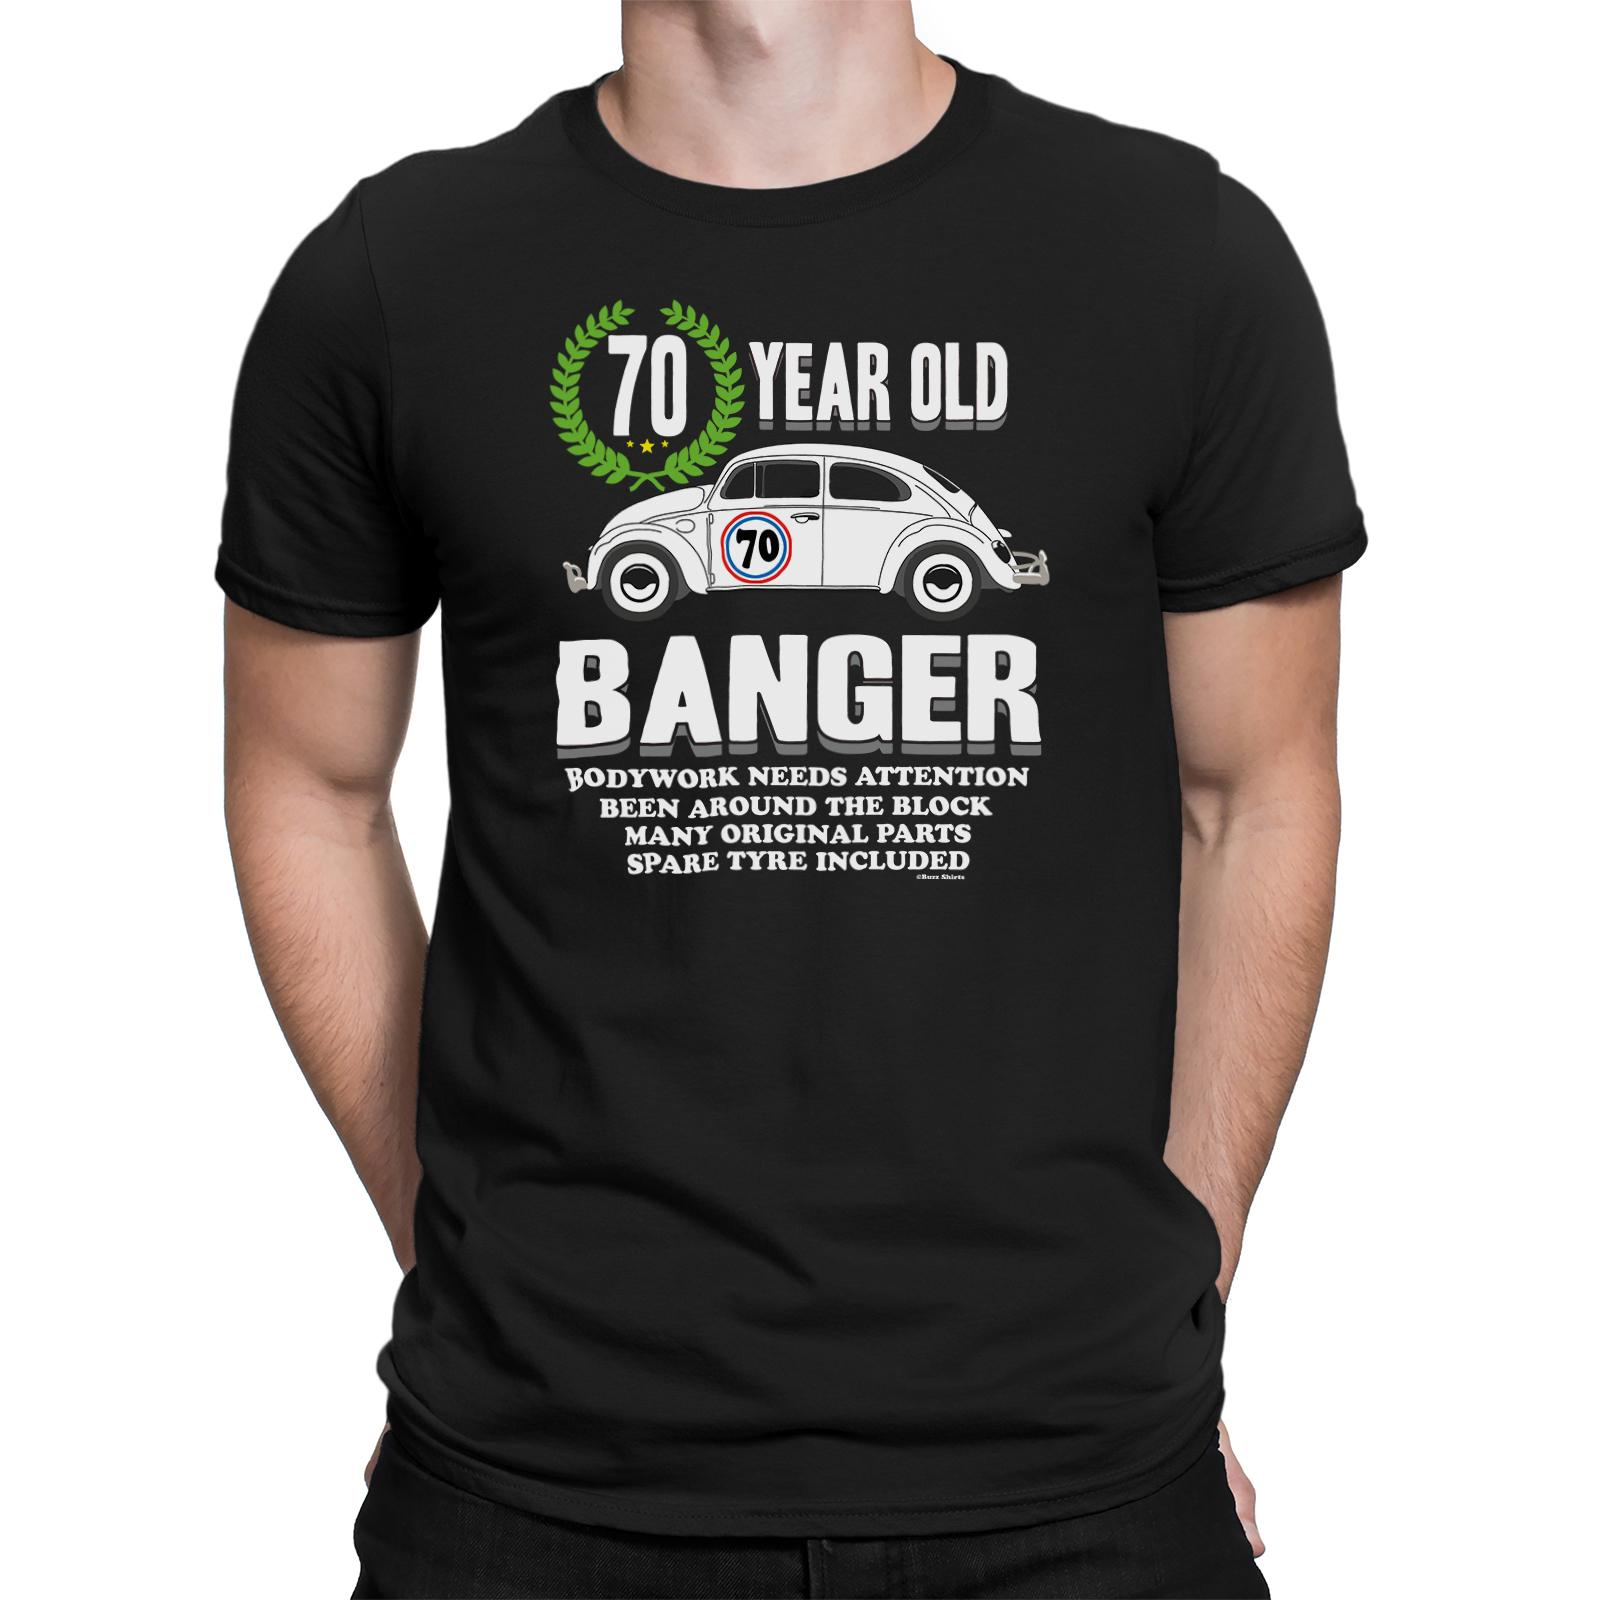 Mens 70th Birthday Tshirt Old Banger 70 Years Joke Gift Seventy Cool Casual Pride T Shirt Men Unisex New Fashion Humor Funny Ts From